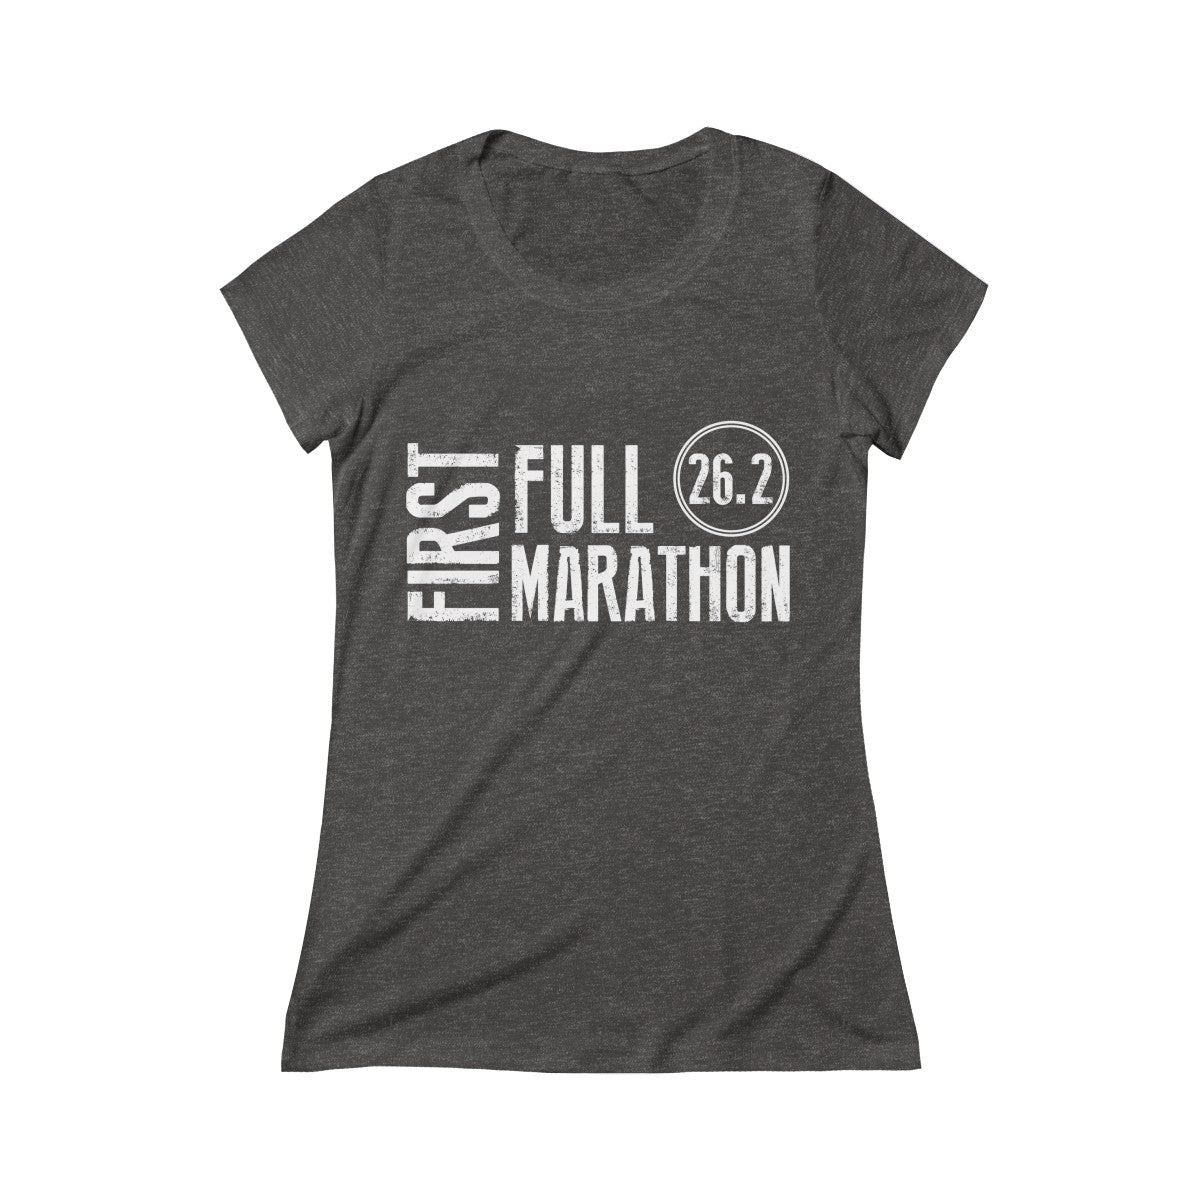 First Full Marathon 26.2 Women's Crew Tee